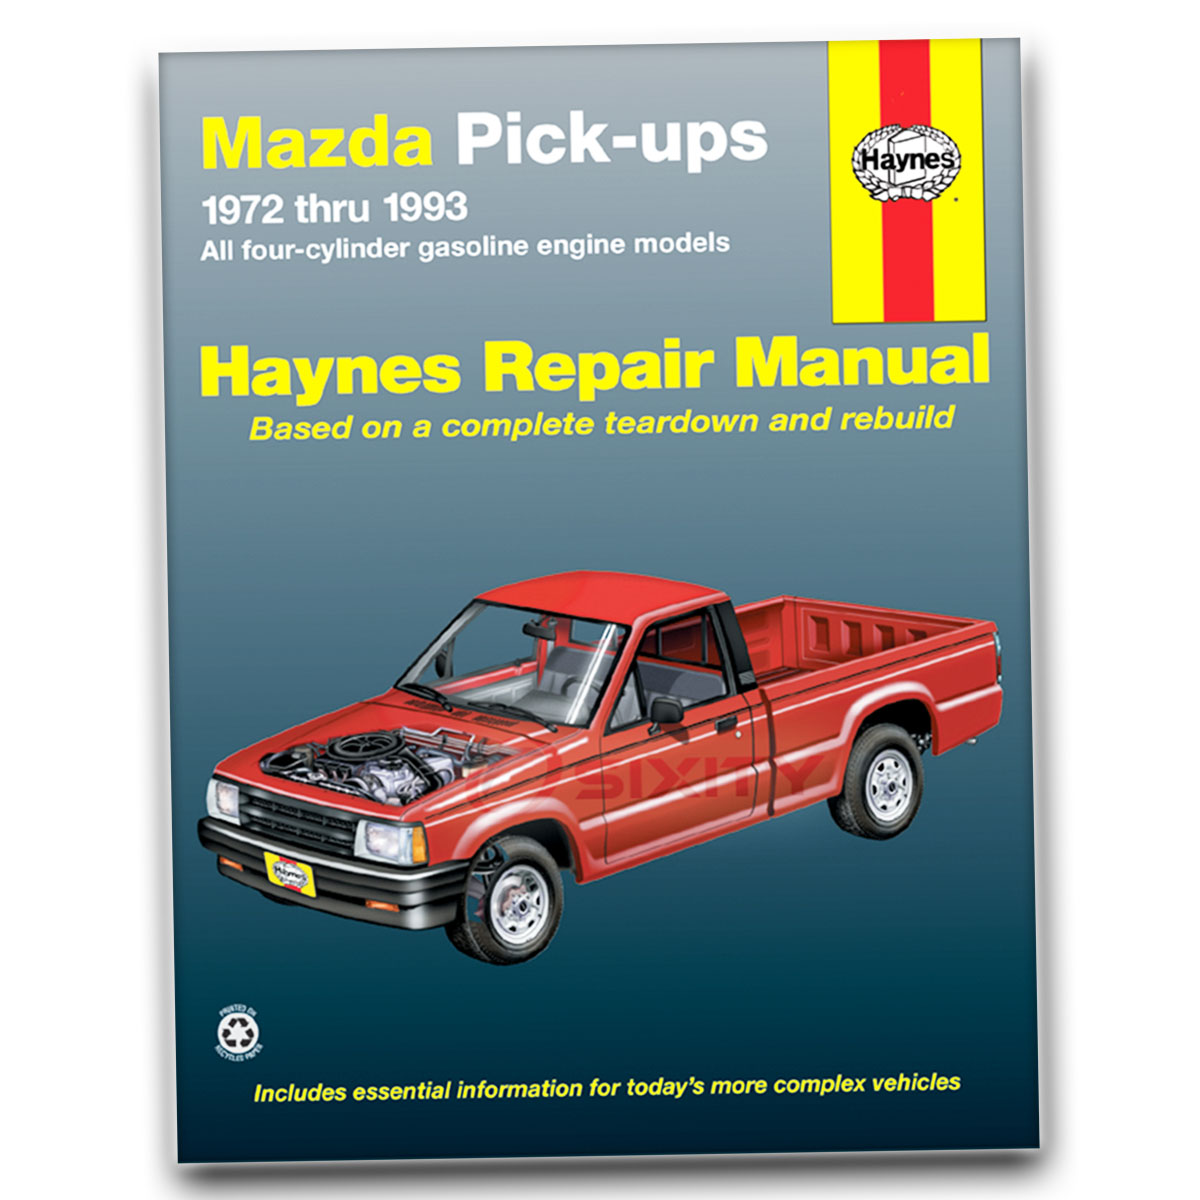 mazda b2200 haynes repair manual sundowner base le 5 se 5 lx dlx rh ebay com mazda b2600 workshop manual pdf 1998 mazda b2600 workshop manual